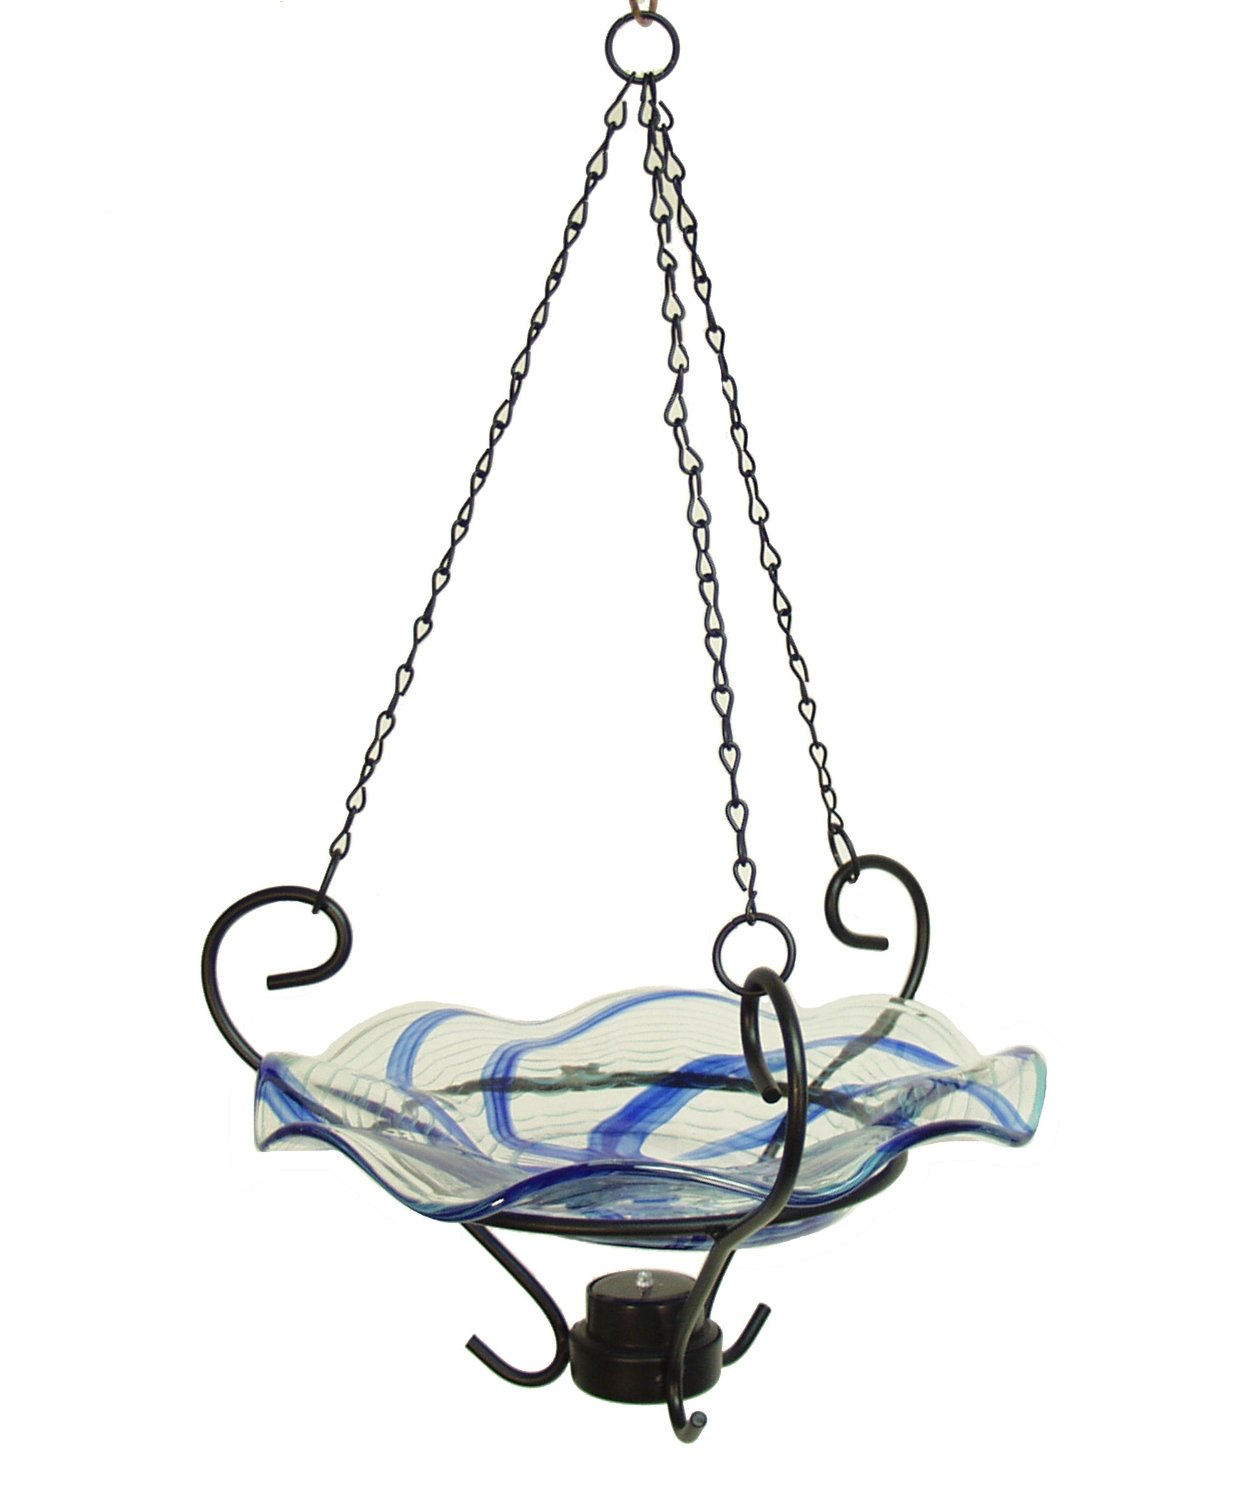 Echo Valley 5161 Lunalite Wavy Hanging Birdbath, Blue